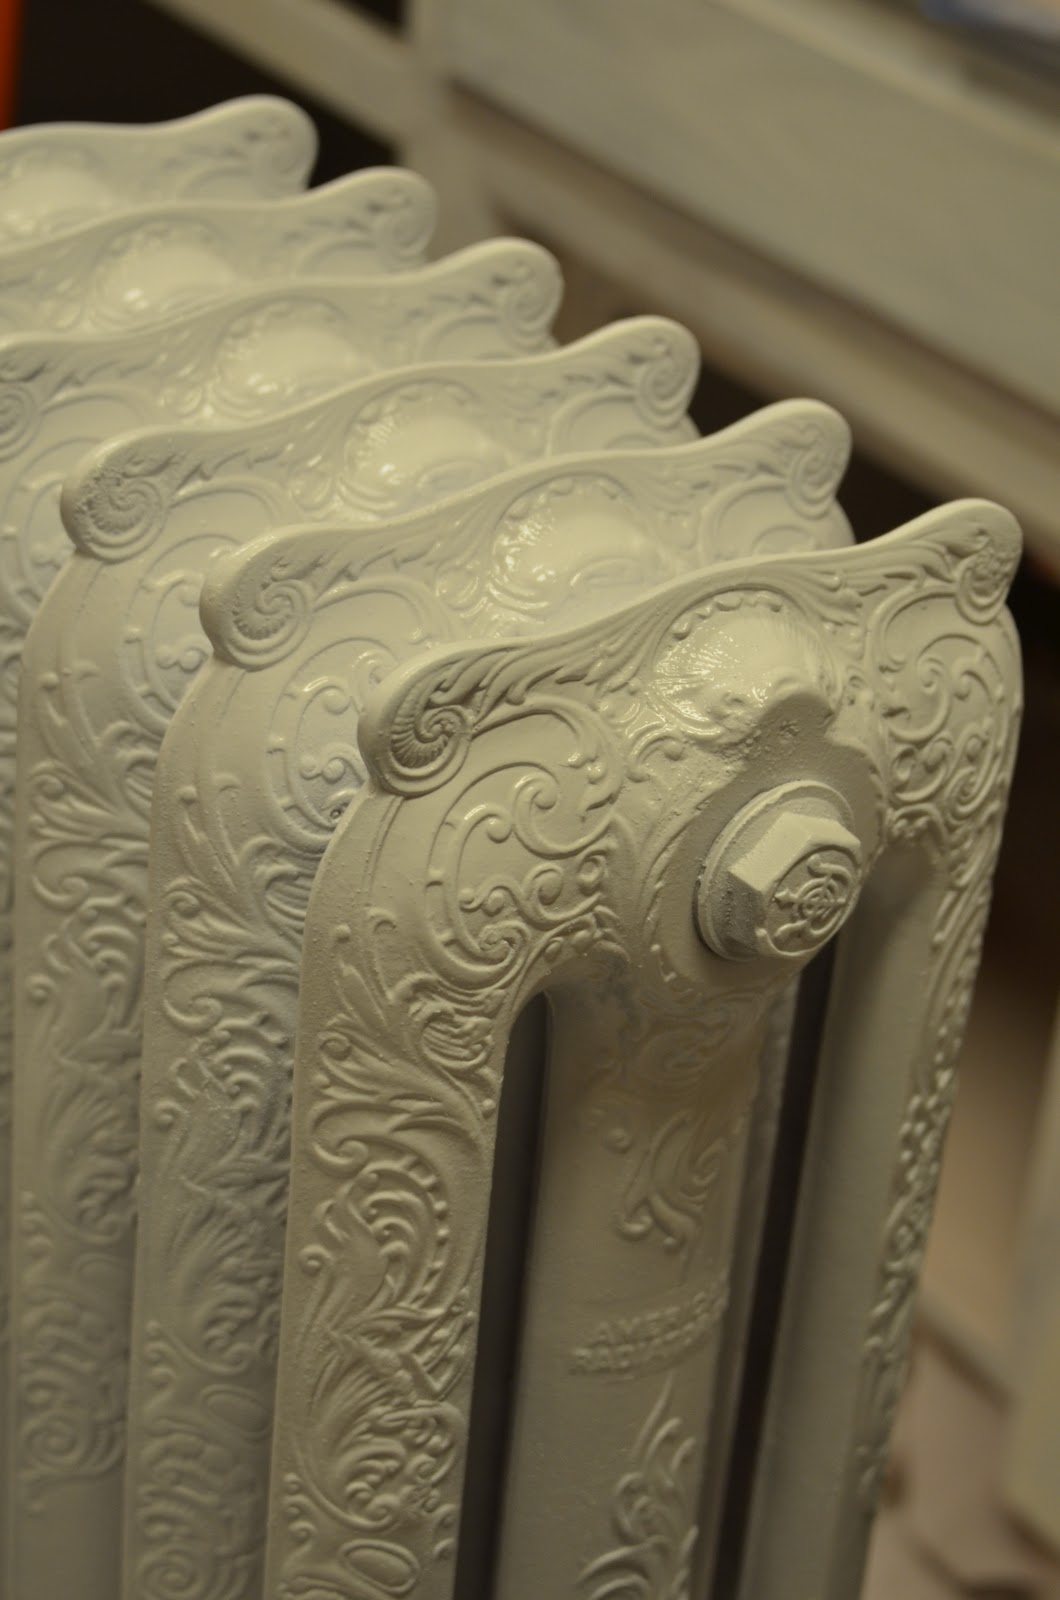 Laini Taylor's blog: Painting Cast Iron Radiators: ATTENTION! Use